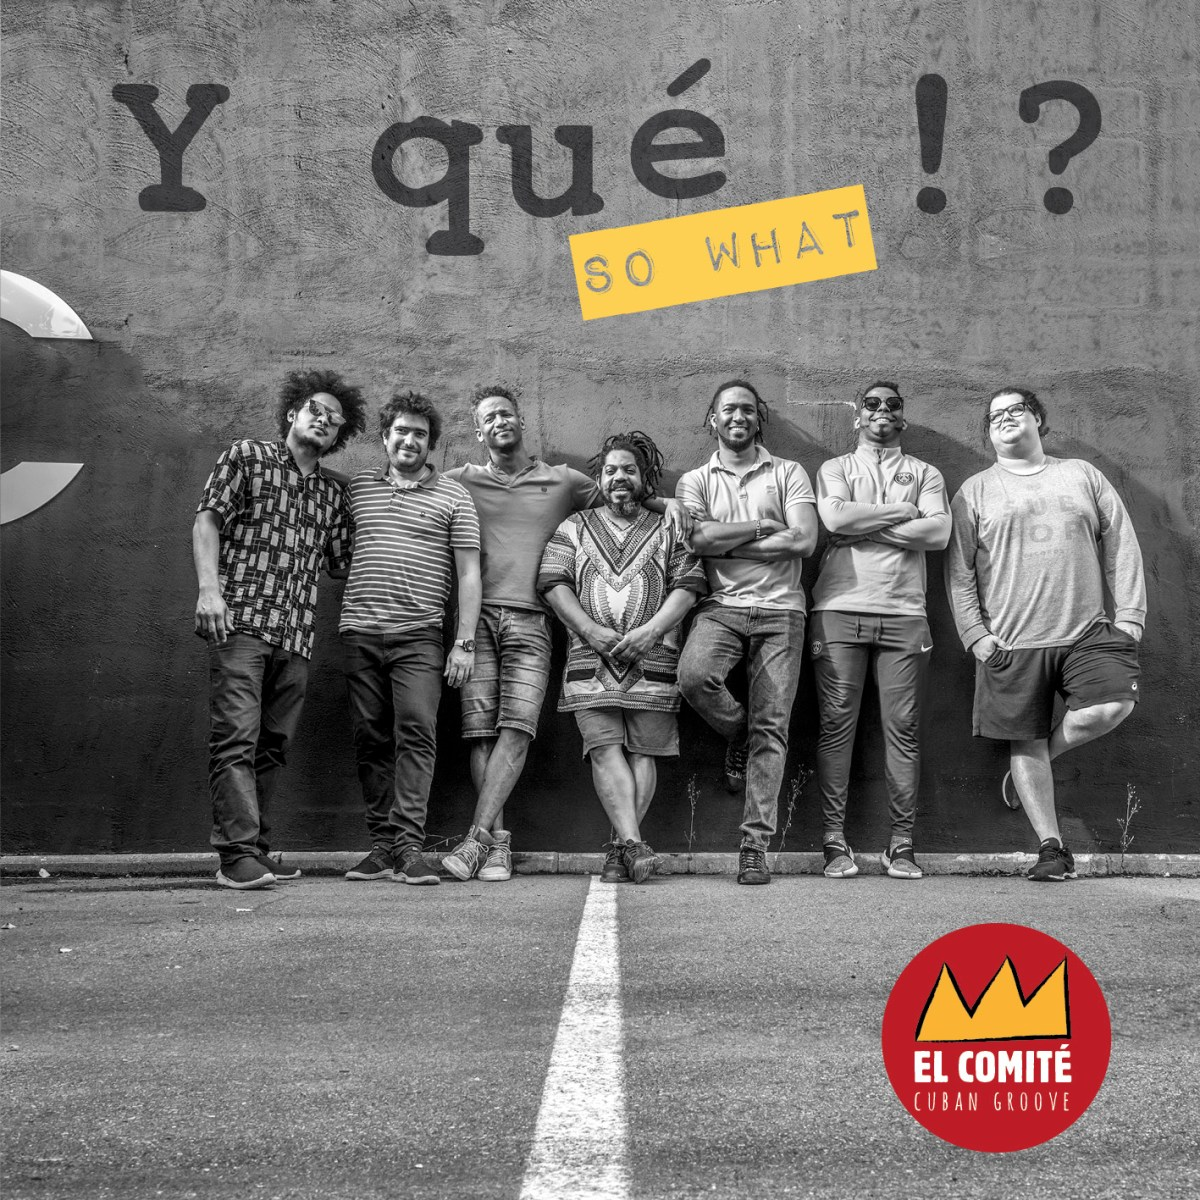 El comité [Cuban Groove]: Y que!?, (So What) (Le J´go, 2019) [CD]